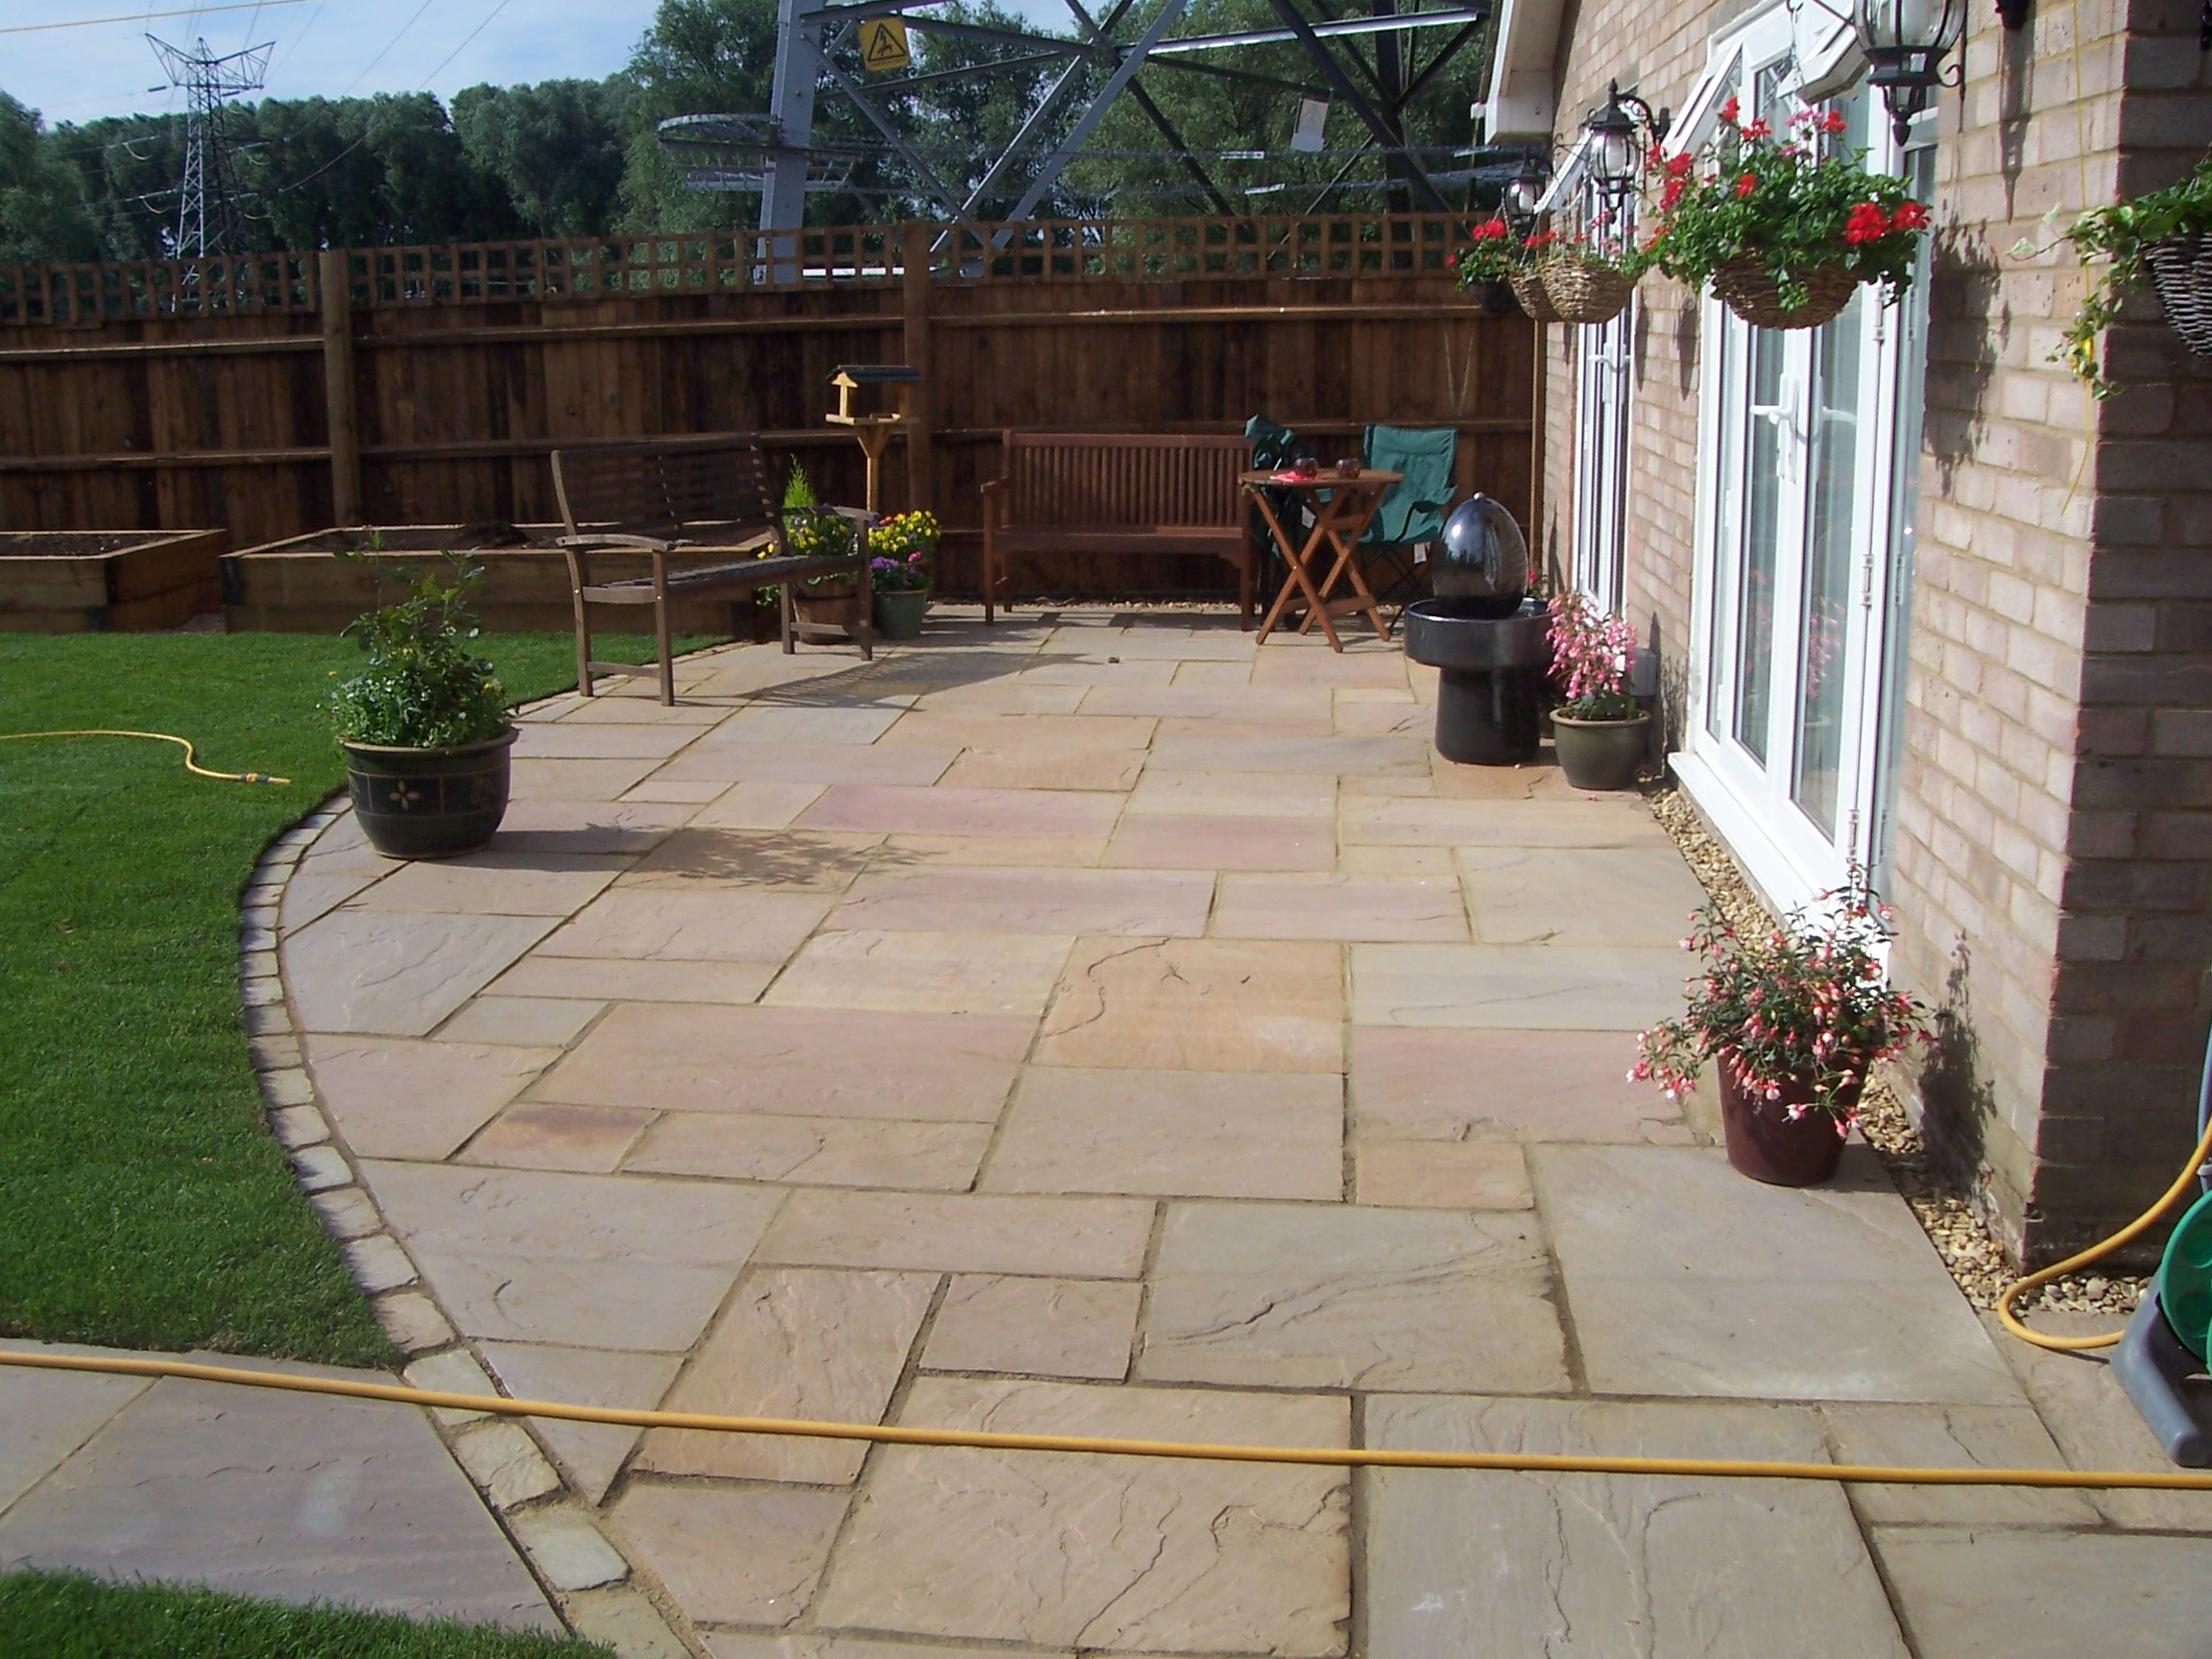 Boyde landscapes bedford block paving and driveways for Paved garden designs